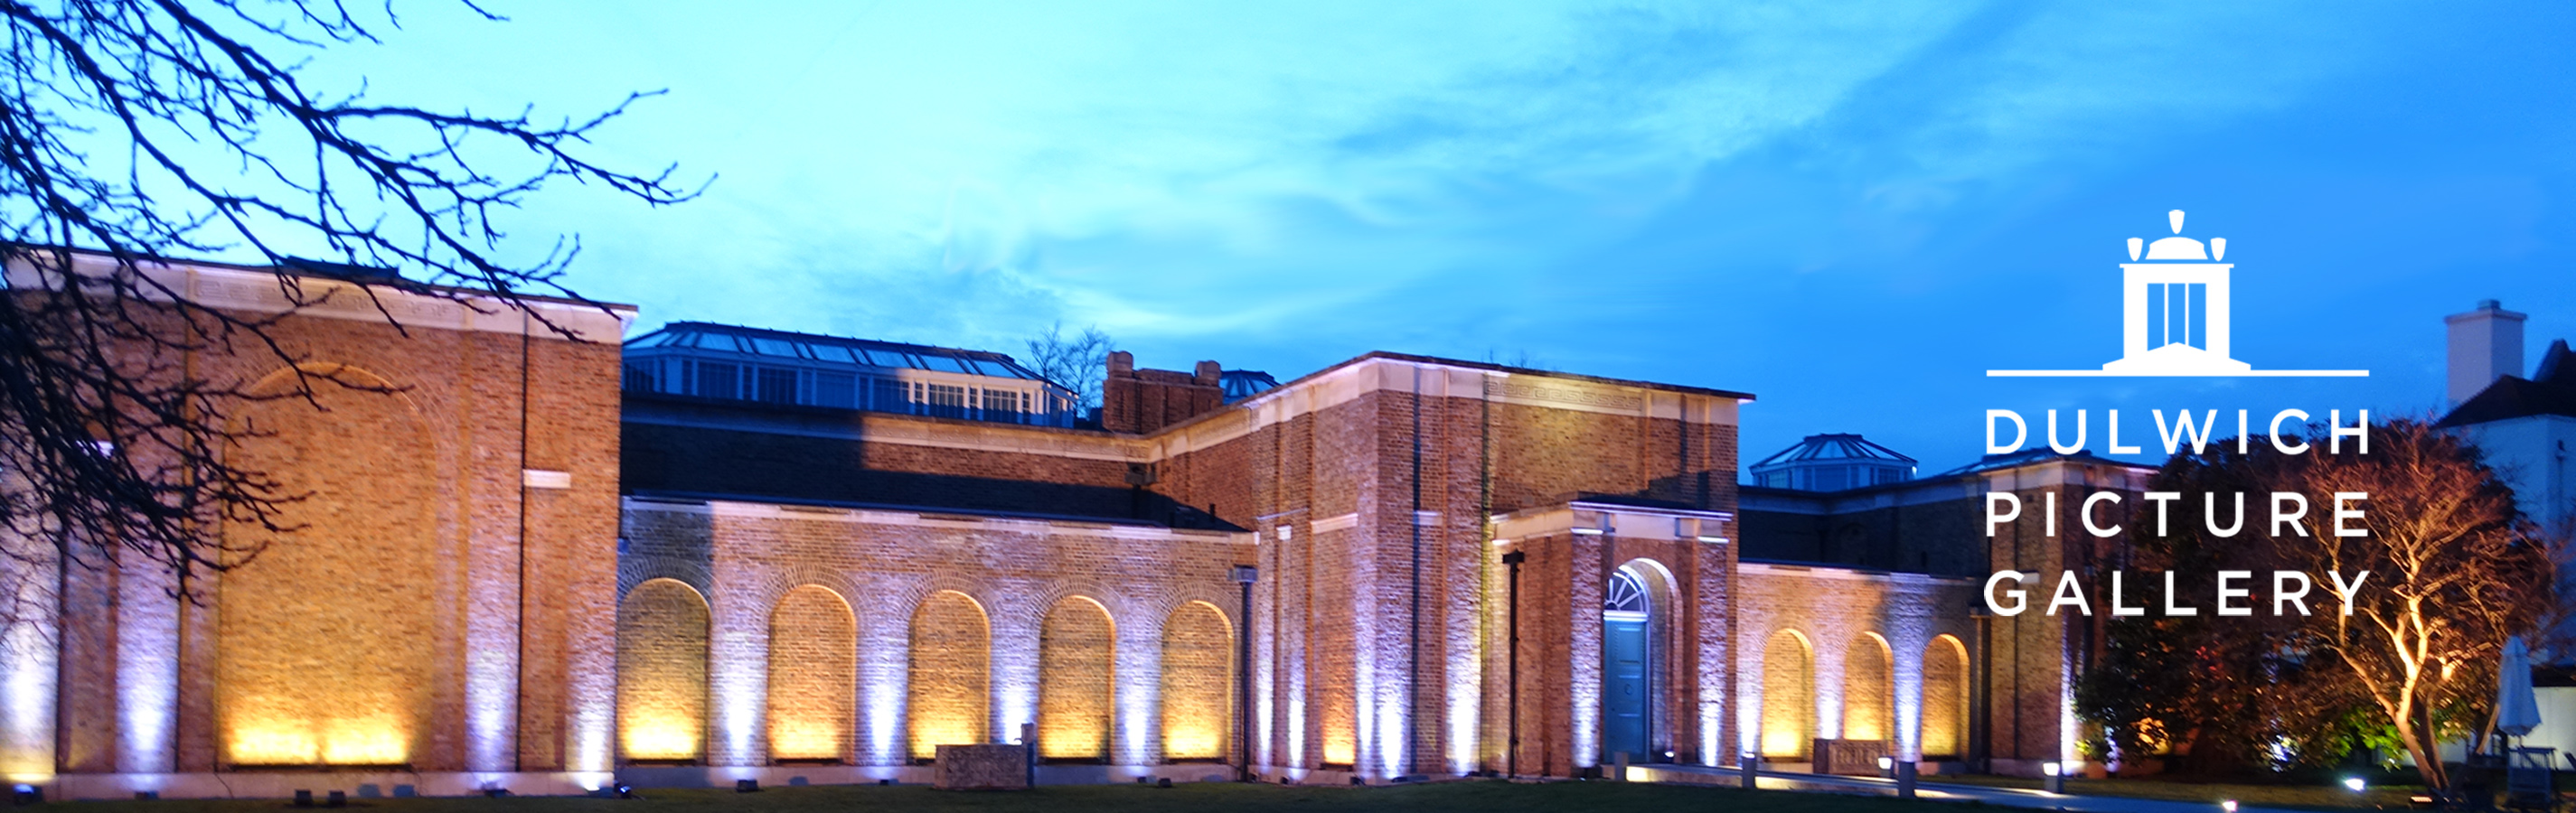 Dulwich Picture Gallery Header